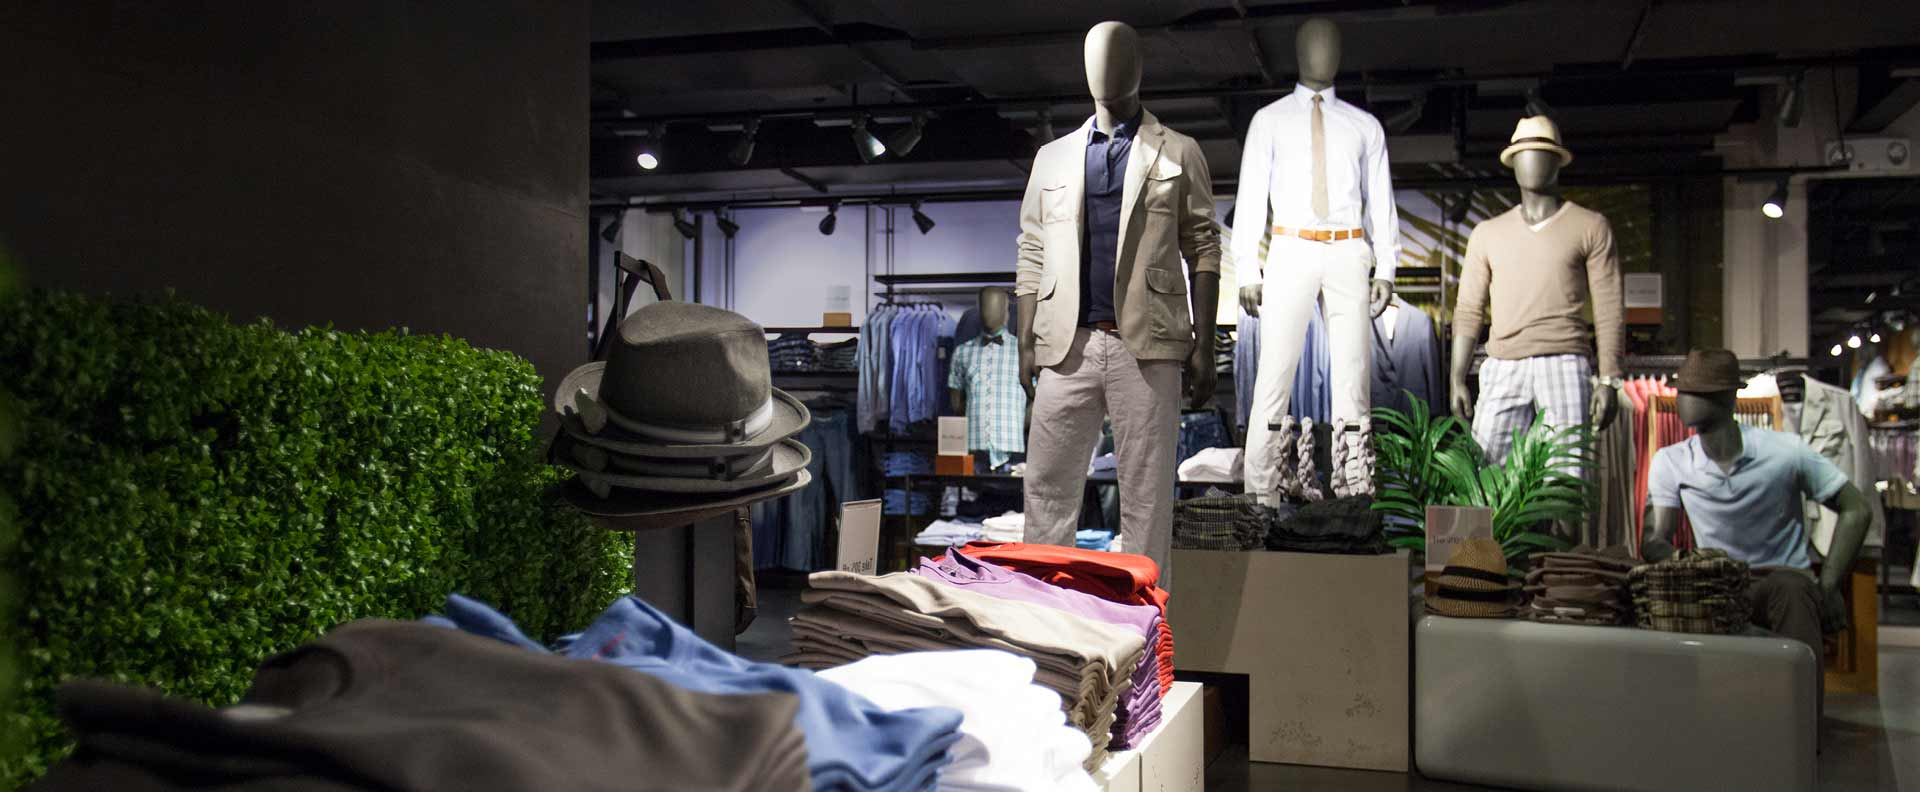 Mannequins and clothing in a men's store display